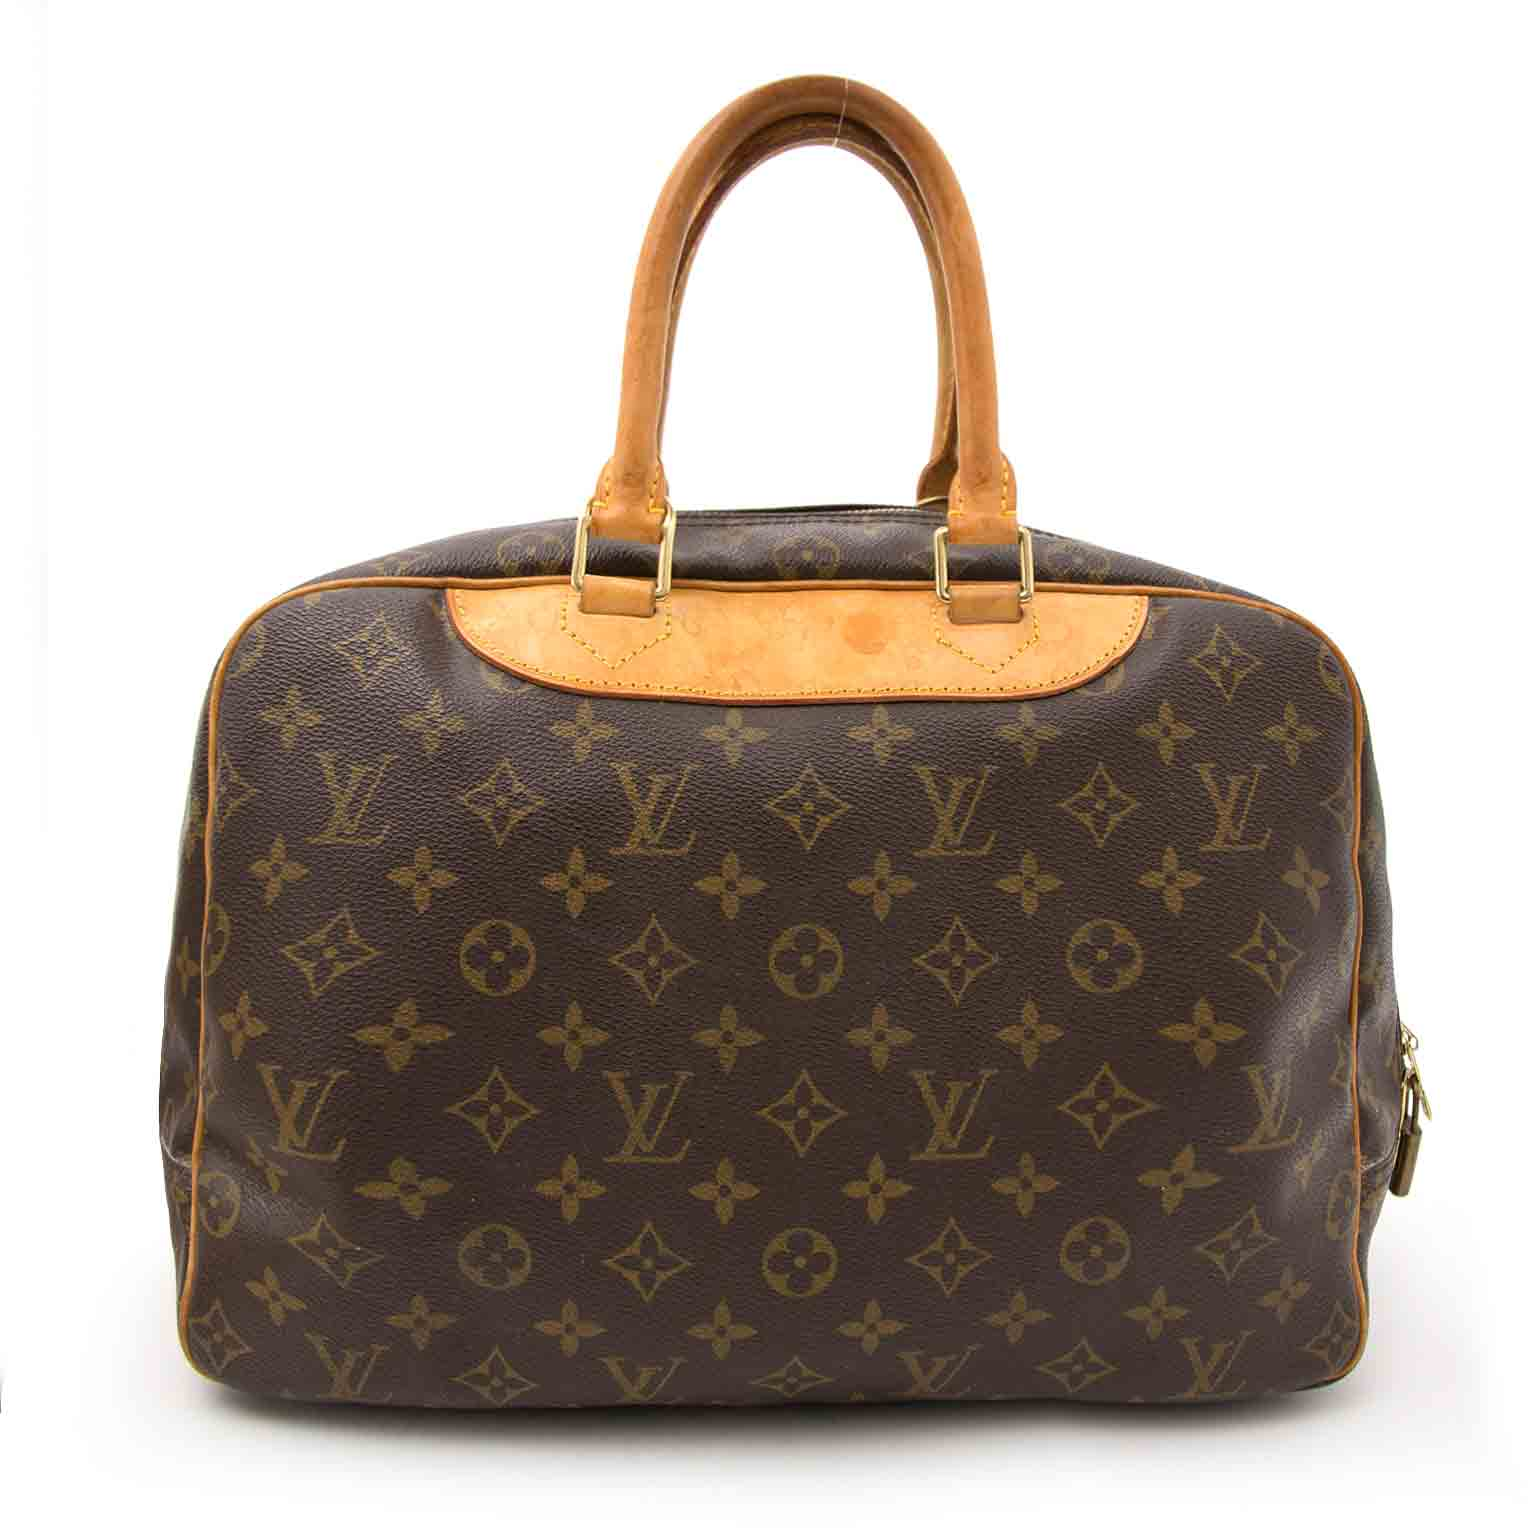 ... Buy and sell your preloved designer bags for the best rates online at  Labellov luxury · Louis Vuitton f891cf4809c18